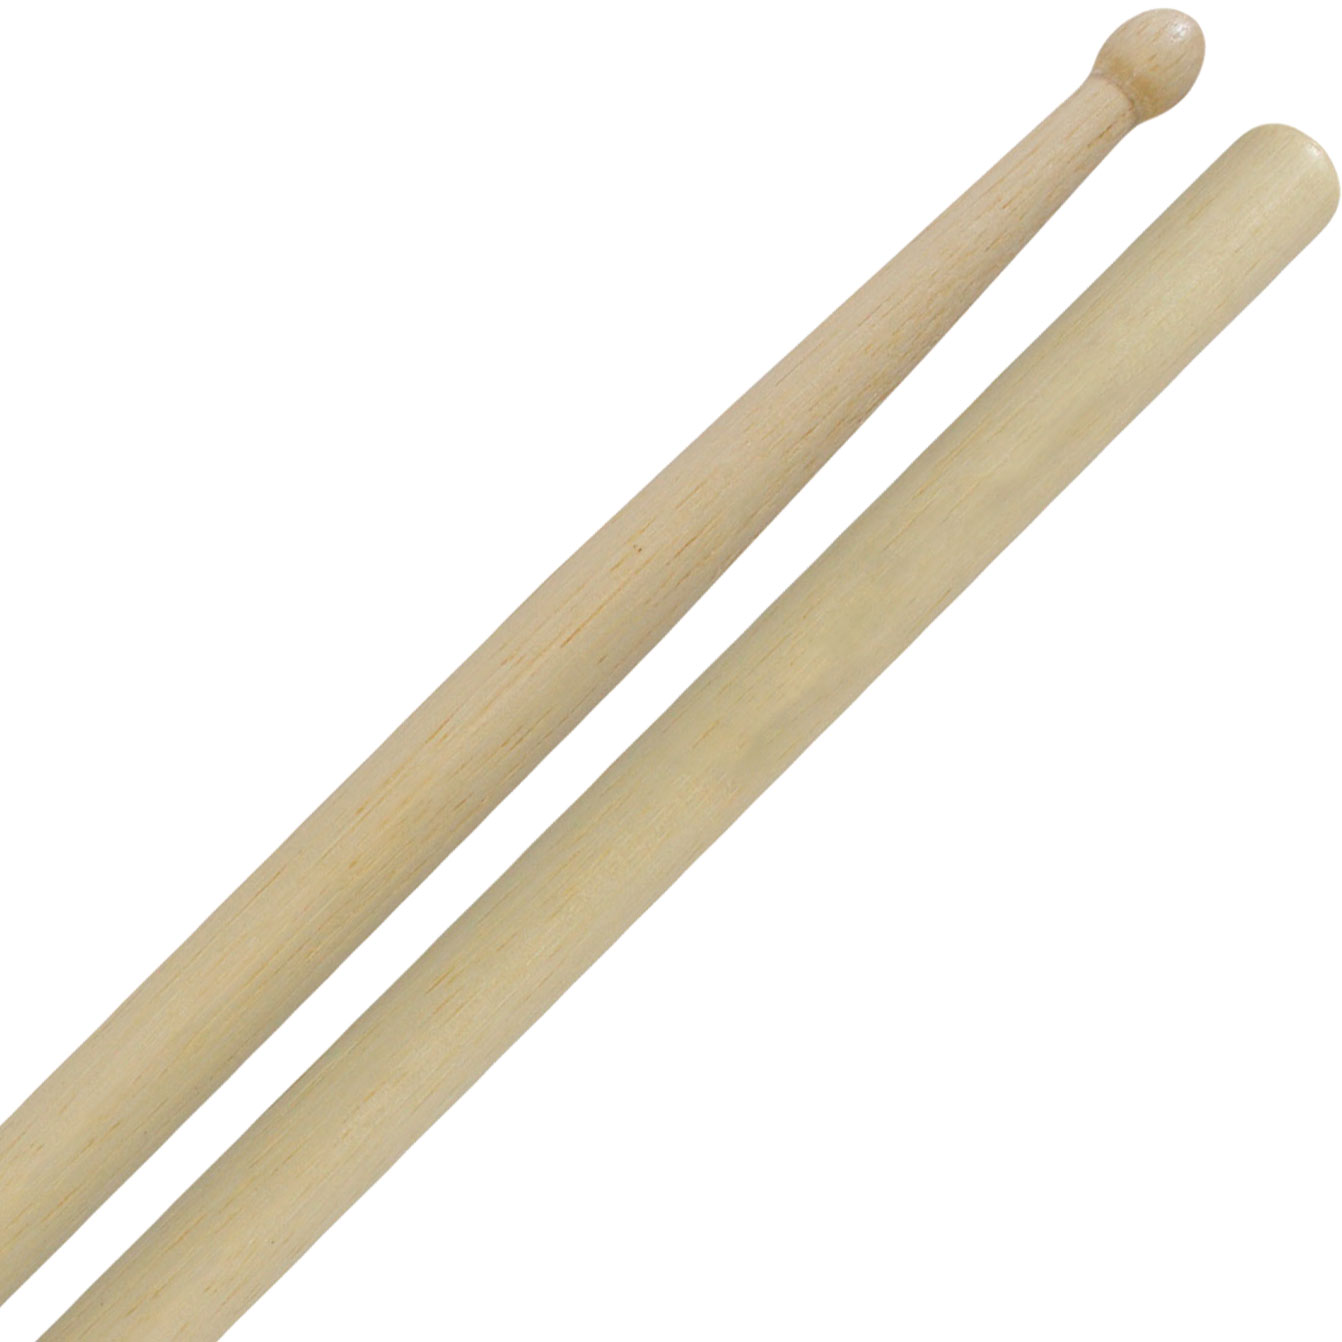 Innovative Percussion Factory Second Paul Rennick #2 Signature Marching Snare Stick